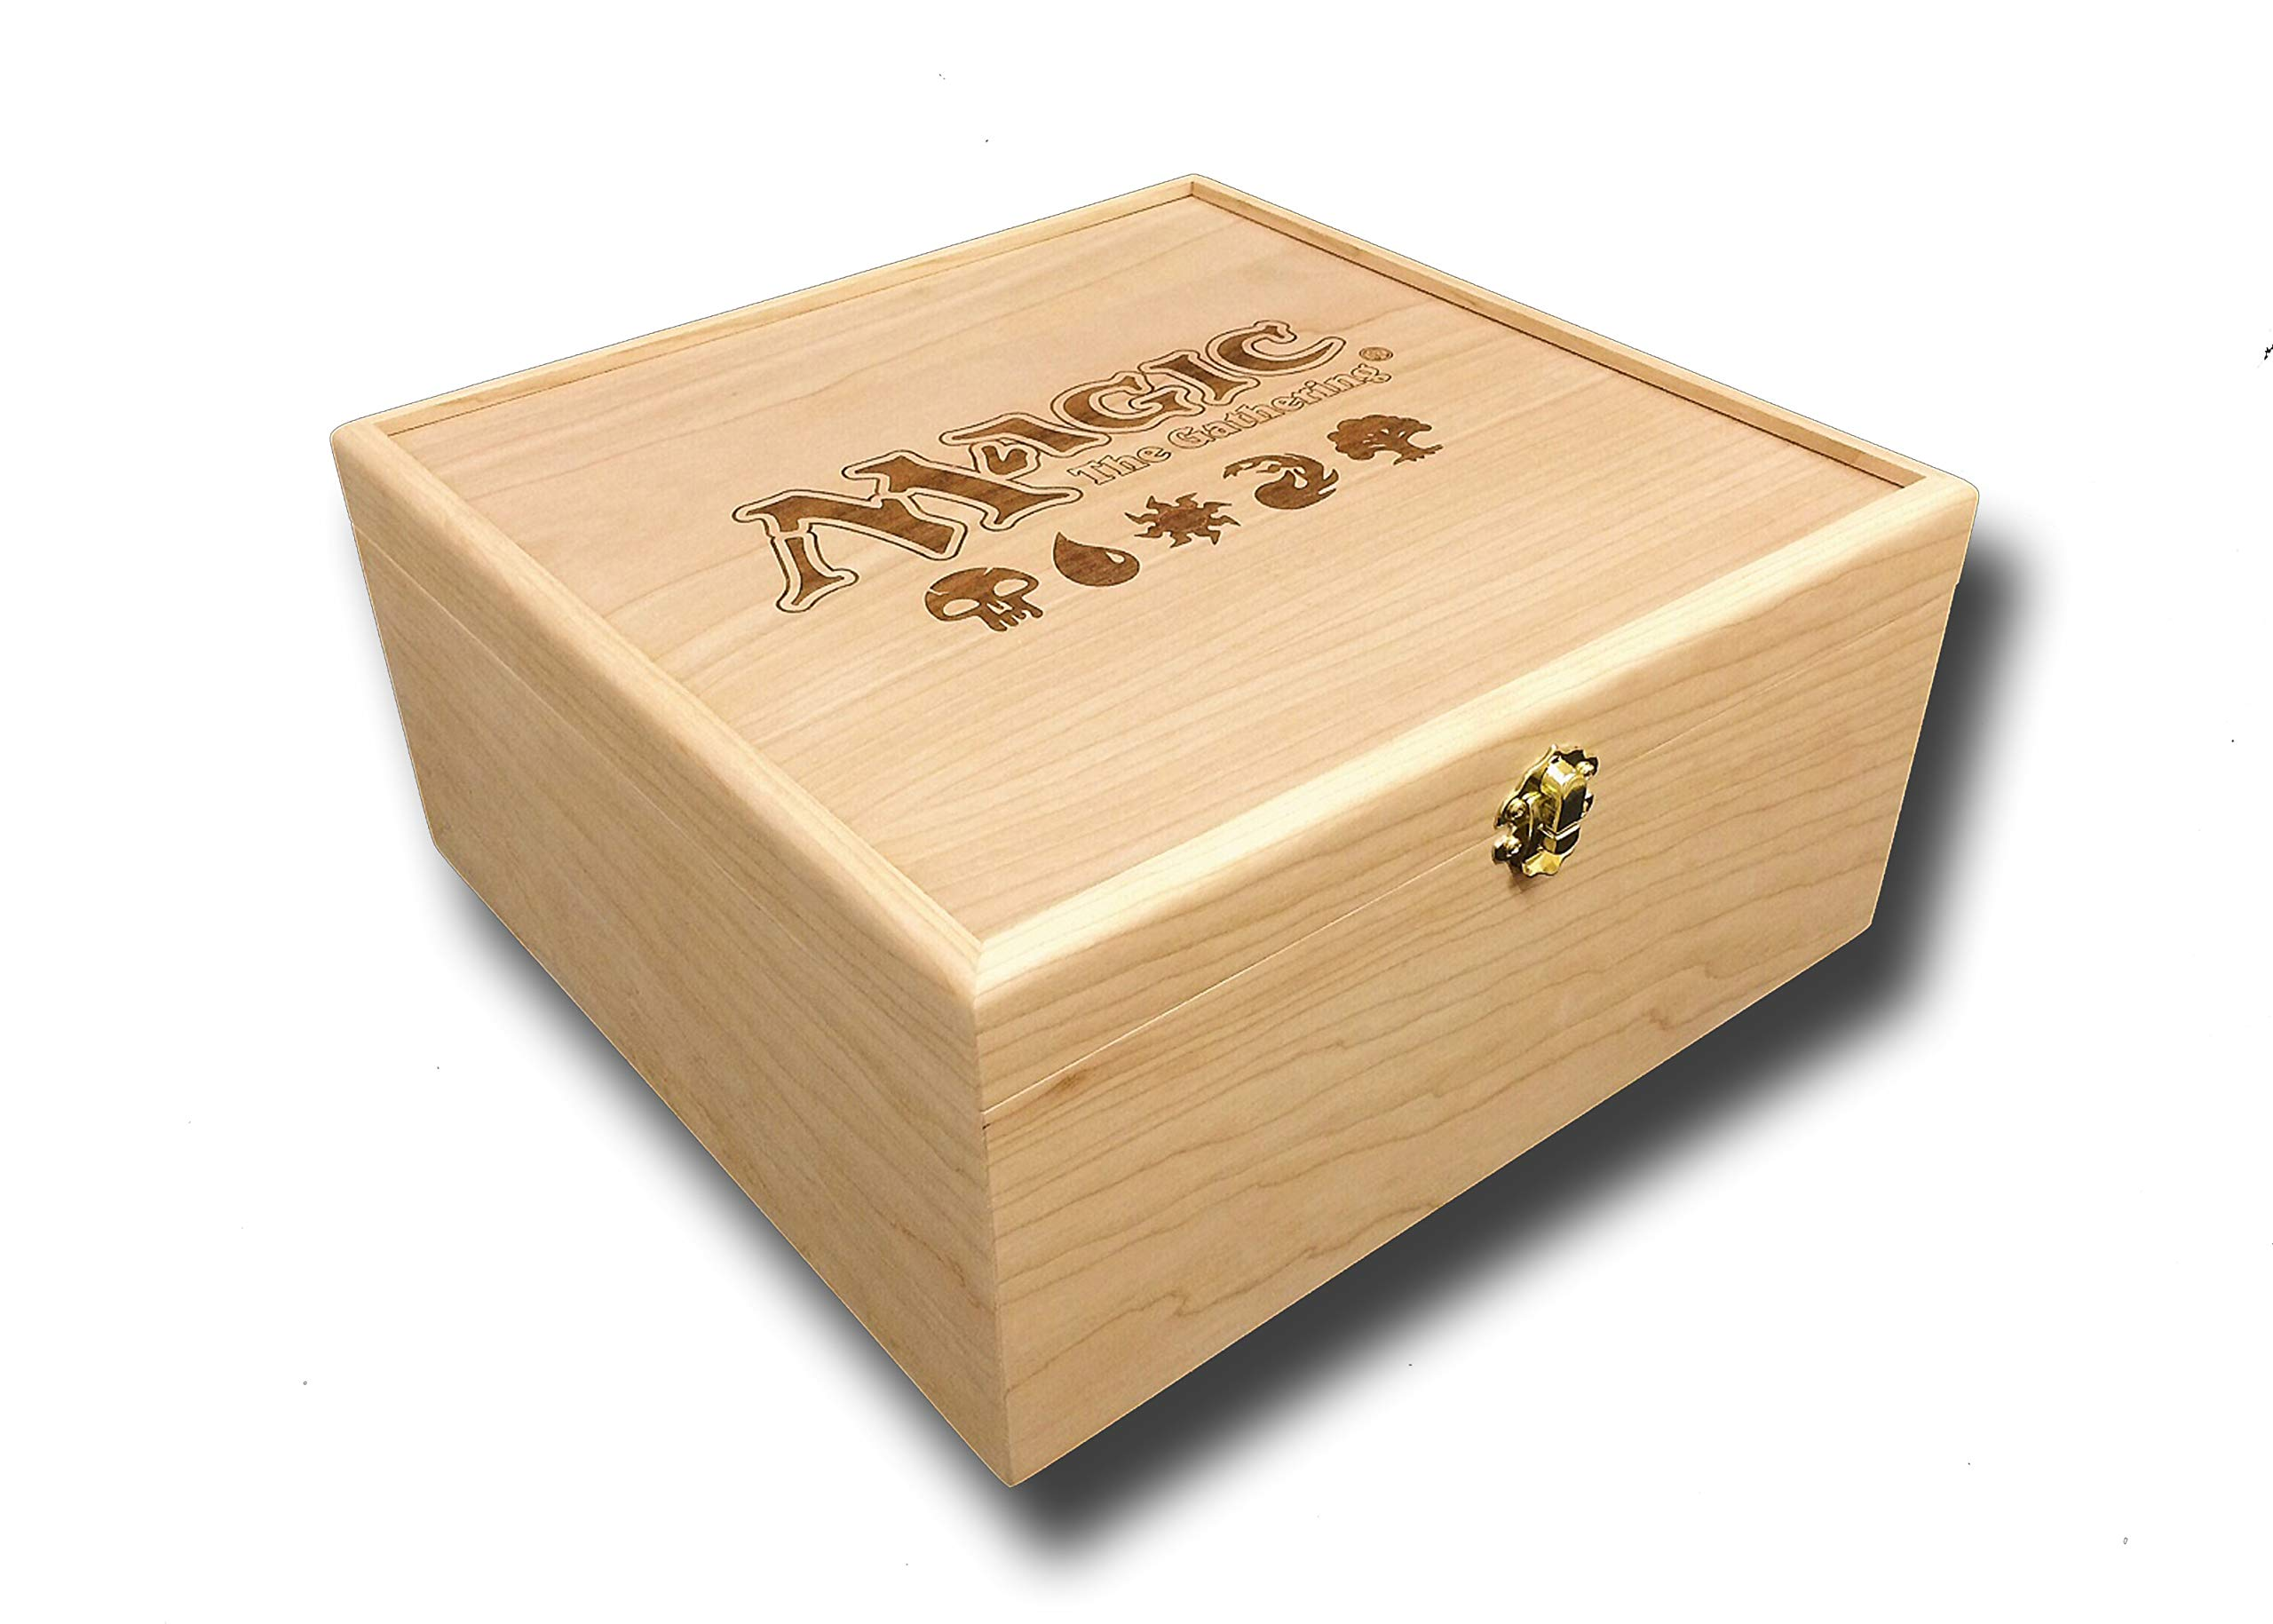 Designcraft Industries Magic The Gathering Engraved Deck Box with Hinges & Latch-10 1/4 x 10 1/4 x 4 3/4- Cherry Box